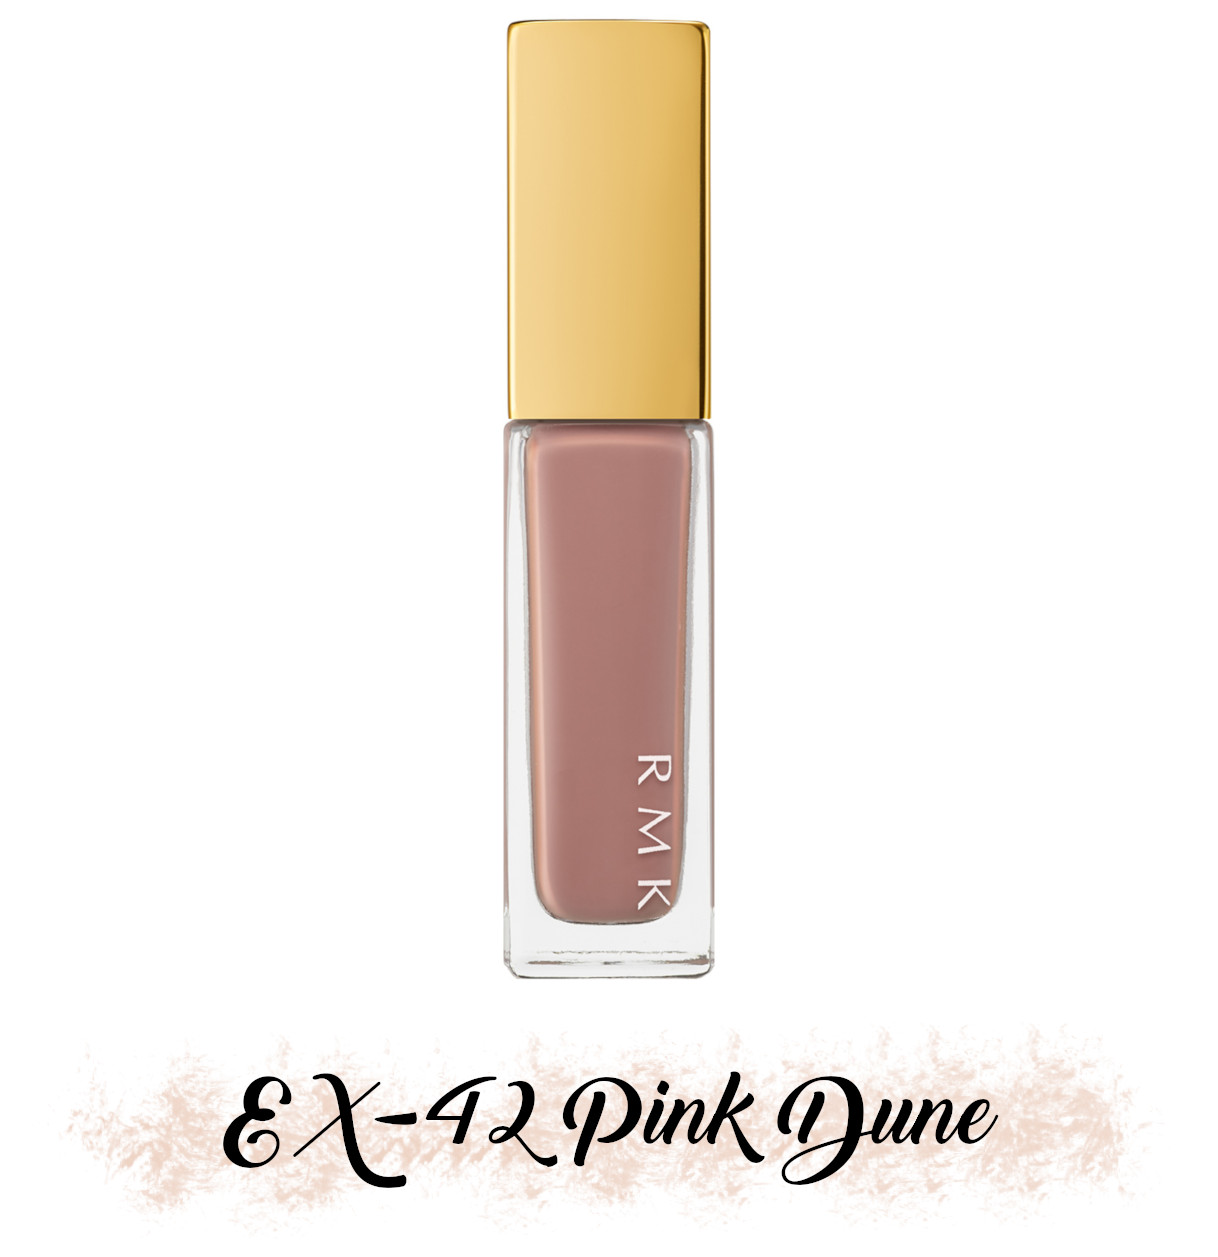 RMK Fall 2021 Collection Rosewood Daydream Nail Polish EX-42 Pink Dune